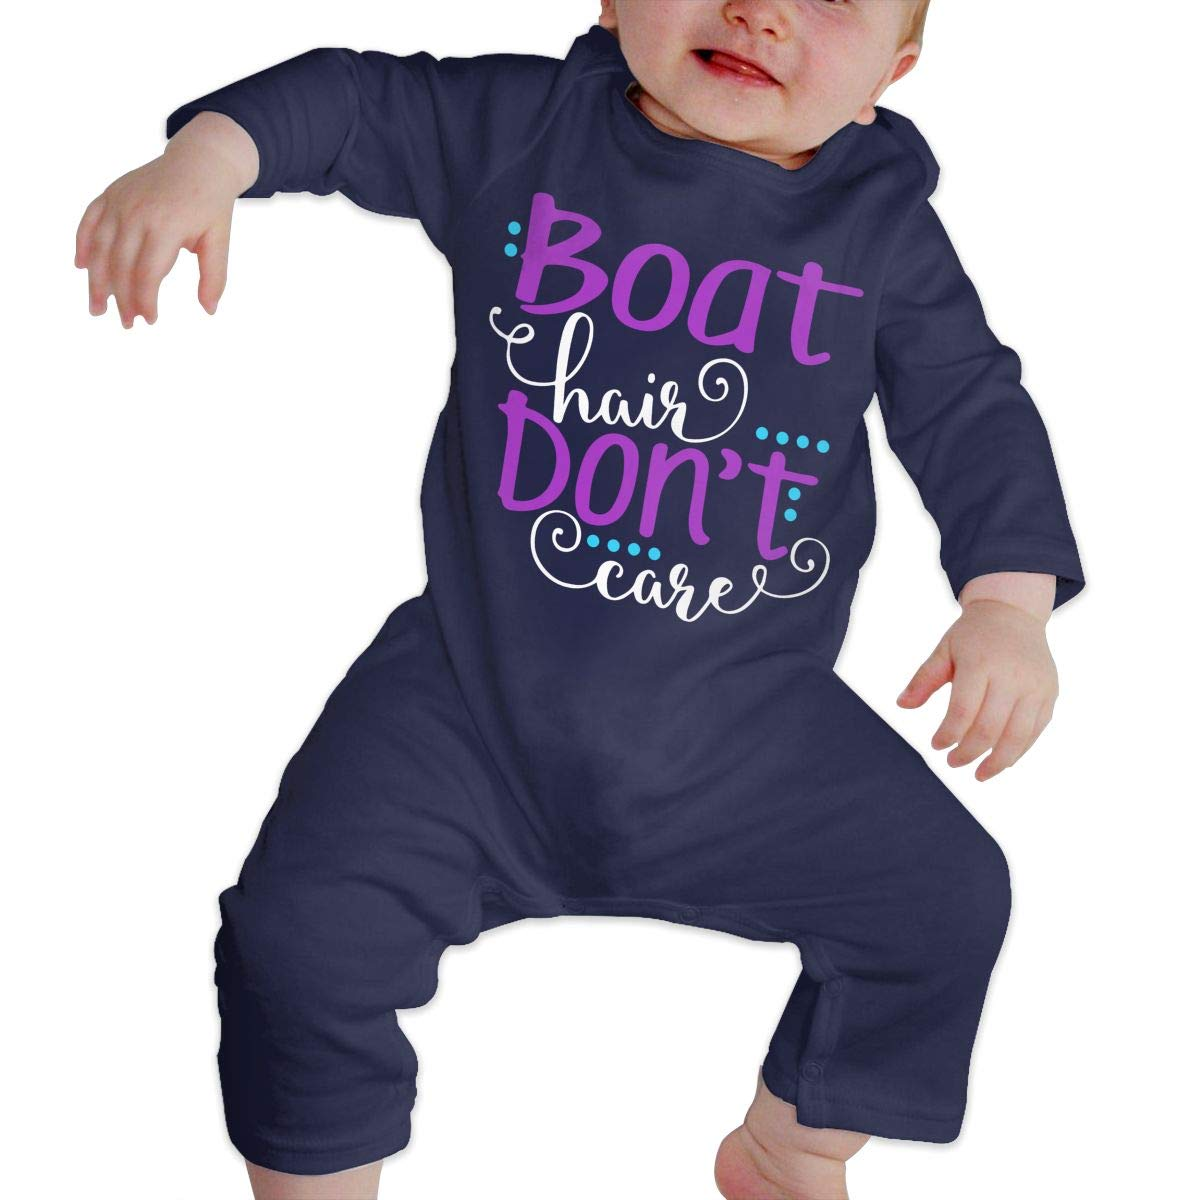 Mri-le1 Toddler Baby Boy Girl Bodysuits Boat Hair Dont Care Baby Clothes